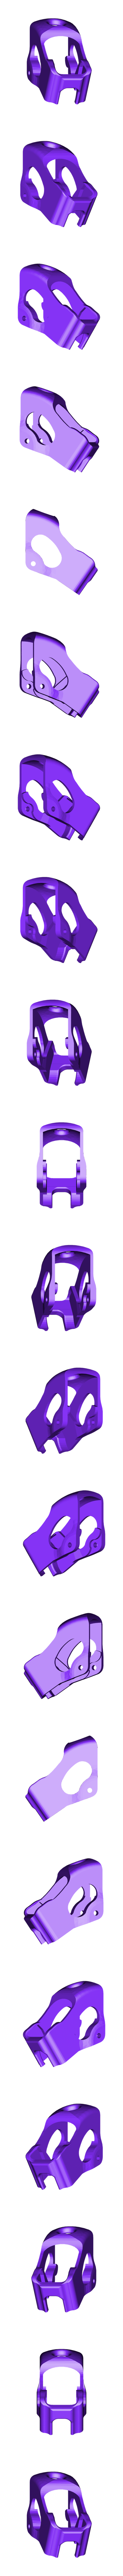 Hat (original) 0518.stl Download STL file Cleat for the sail • 3D printable object, ClementProux